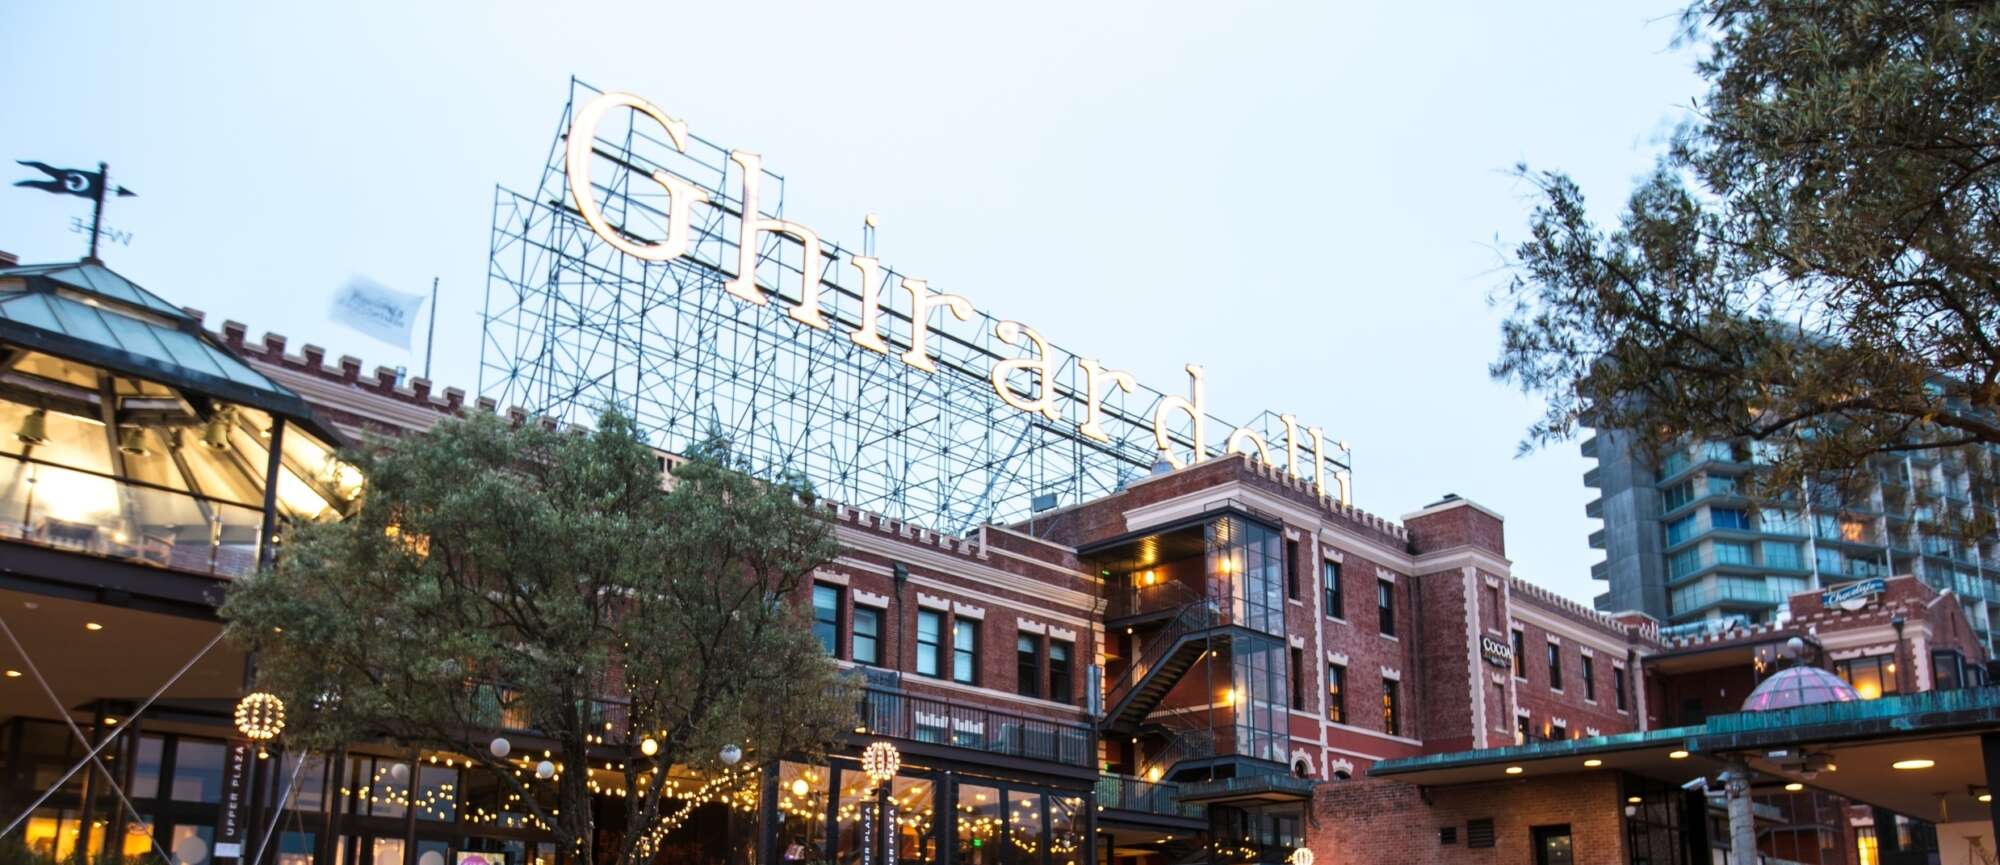 Ghirardelli Square exterior with marquis sign on roof